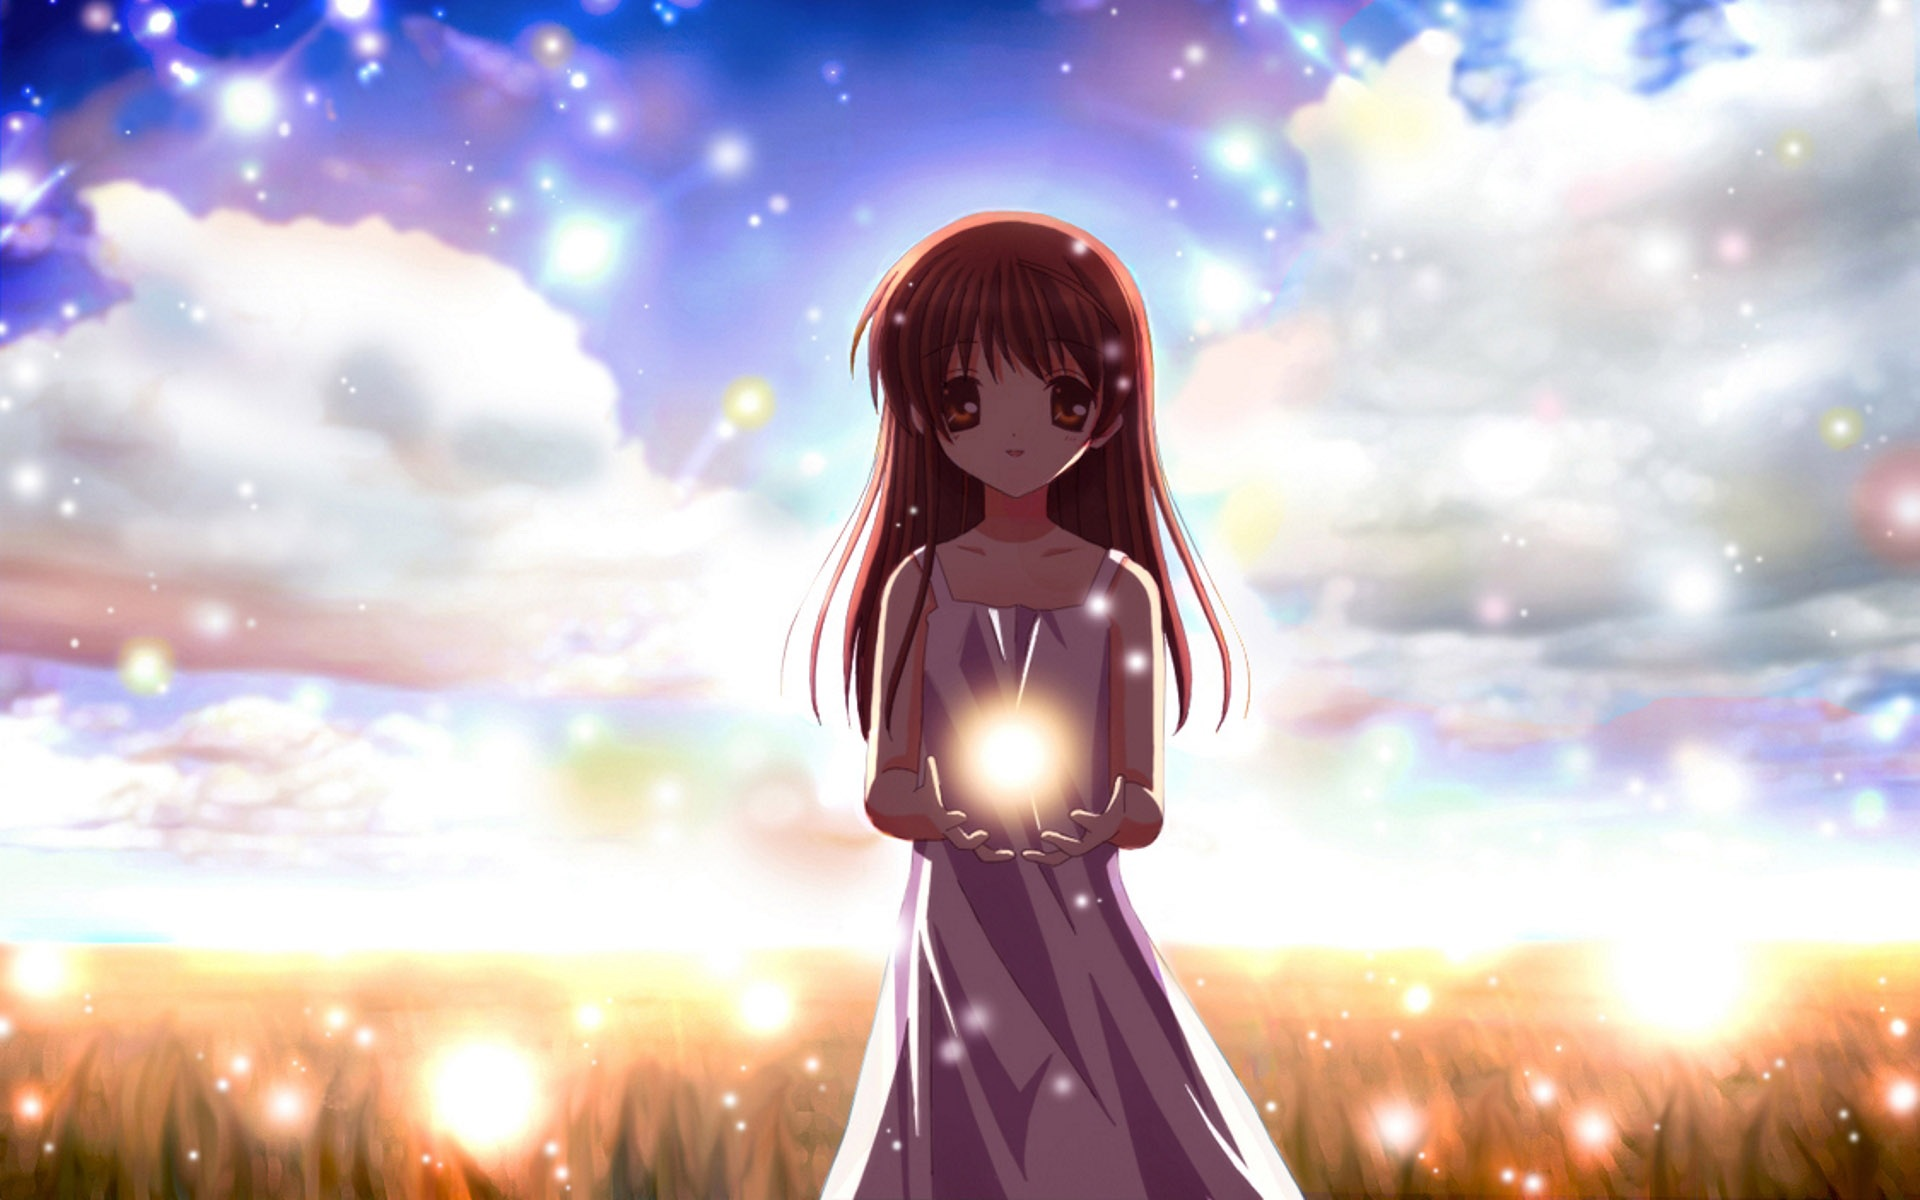 Wallpaper Cartoon Girl Holding A Ball Of Light 1920x1200 Hd Picture